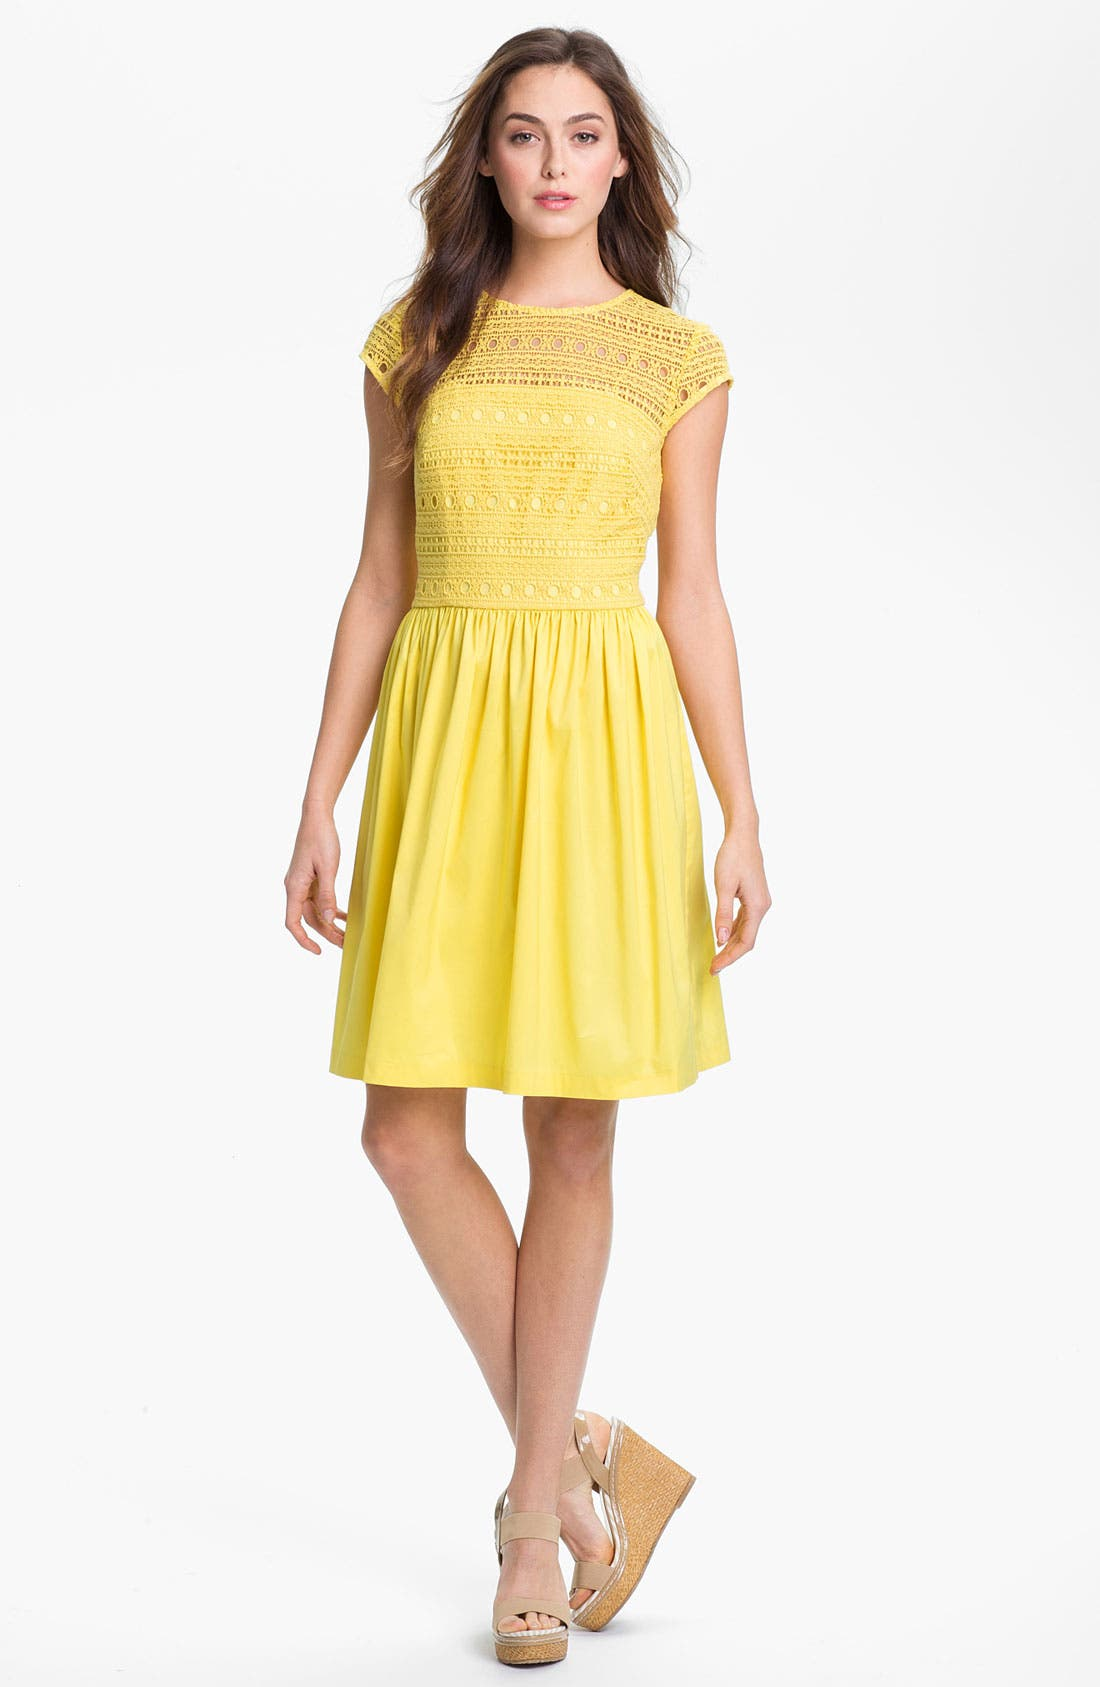 Alternate Image 1 Selected - Suzi Chin for Maggy Boutique Crochet Fit & Flare Dress